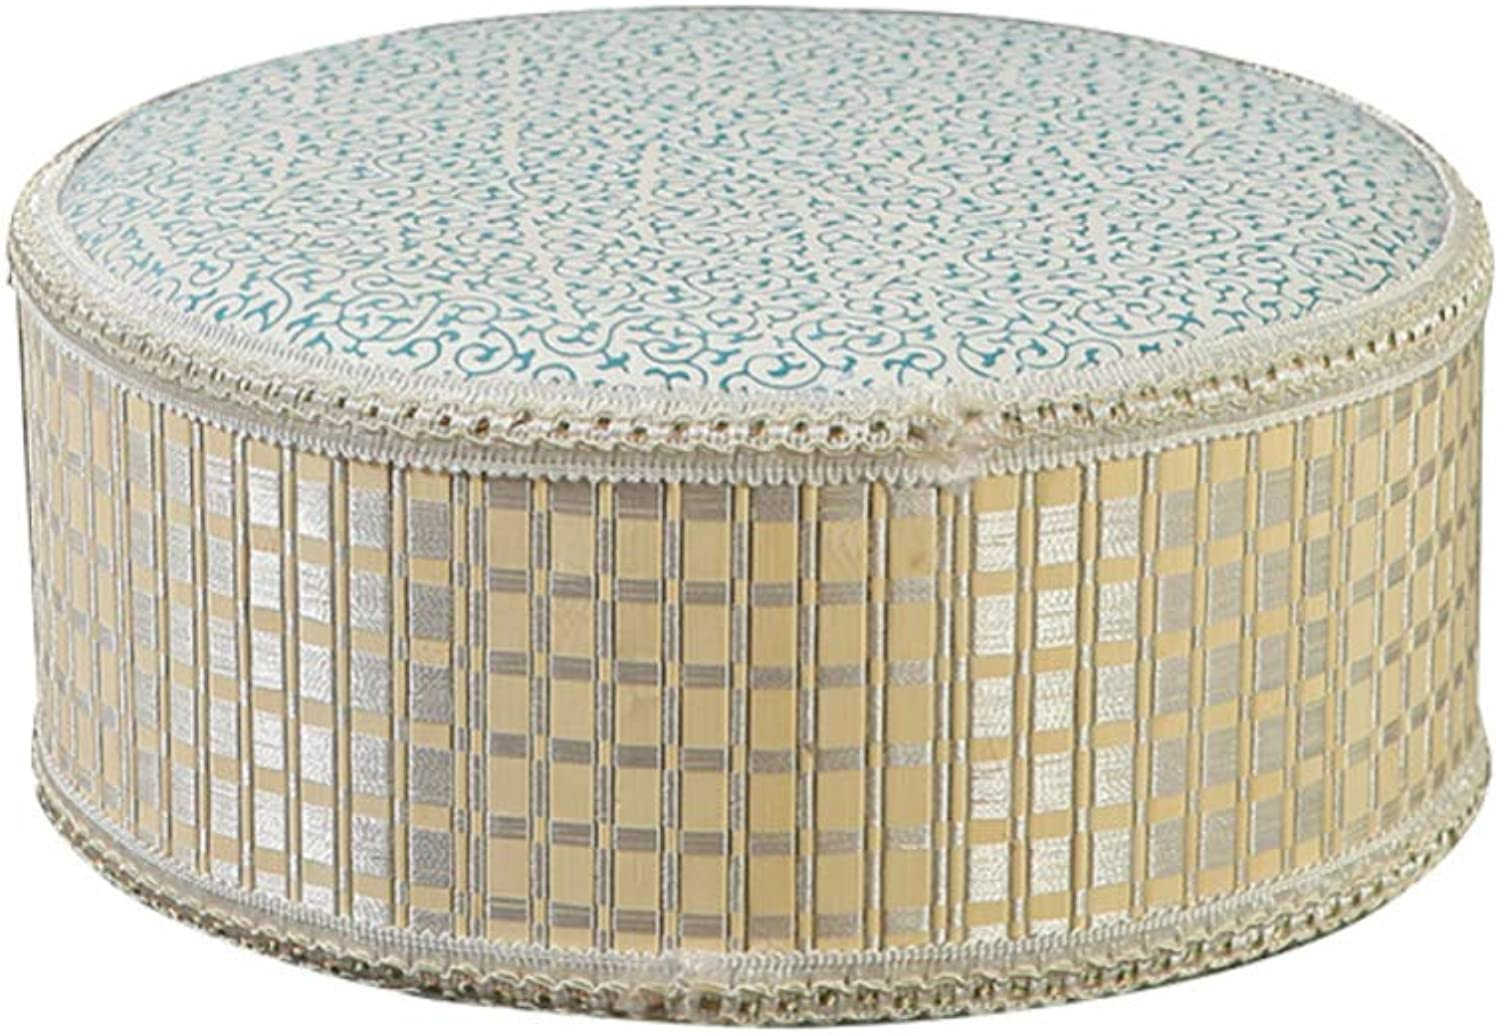 Pouffe Chair Change shoes Stool Straw Bench Stool Woven Stool Fashion Creative Pouf Stool